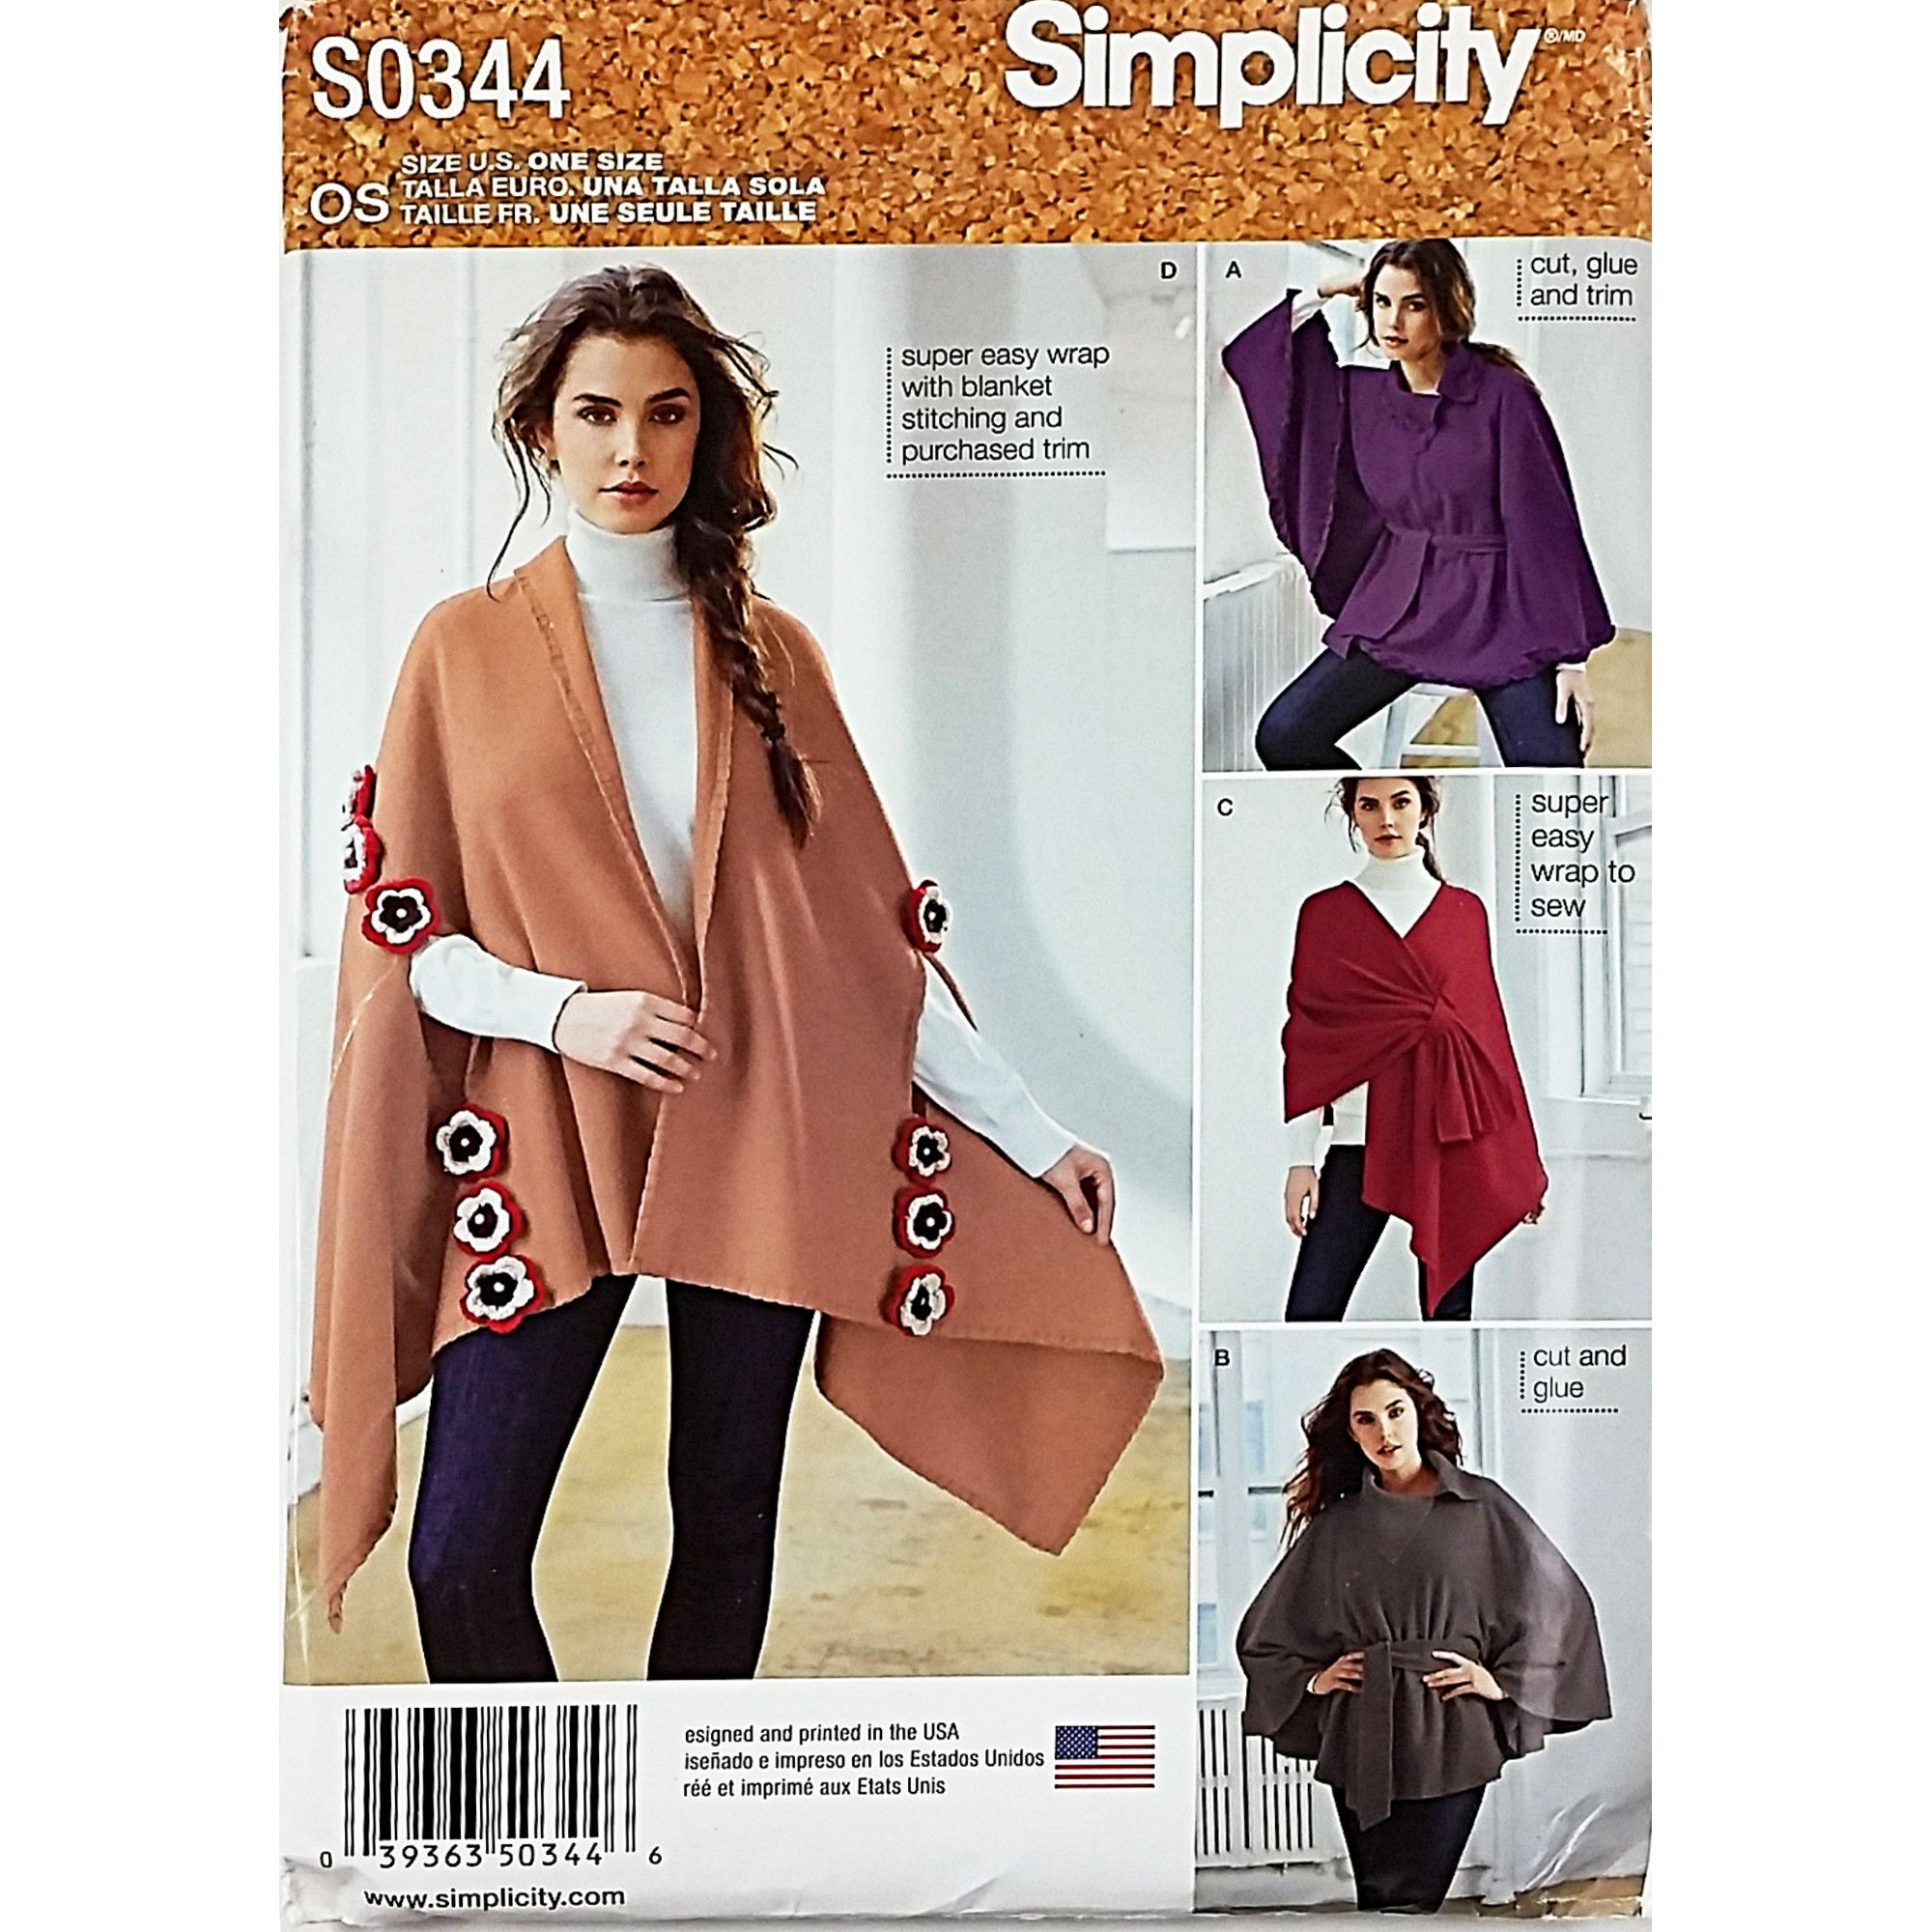 d9d03e94c Sewing Pattern Simplicity S0344 Misses' Fleece Ponchos and Wraps One Size  Fits Most Pattern is complete with 7 pieces, instructions, and envelope.